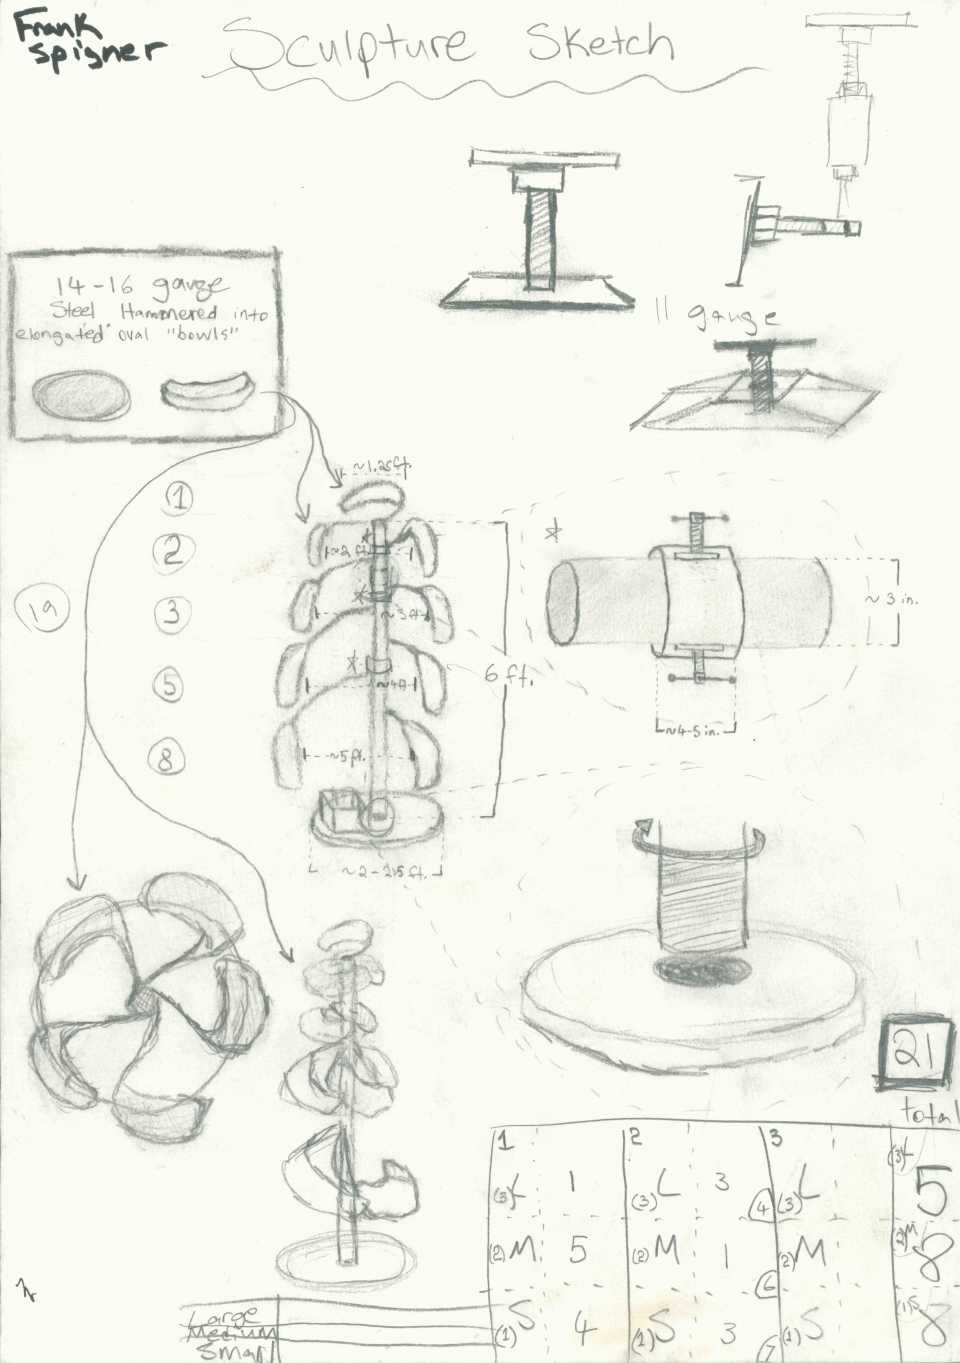 sculpture sketches_Page_1